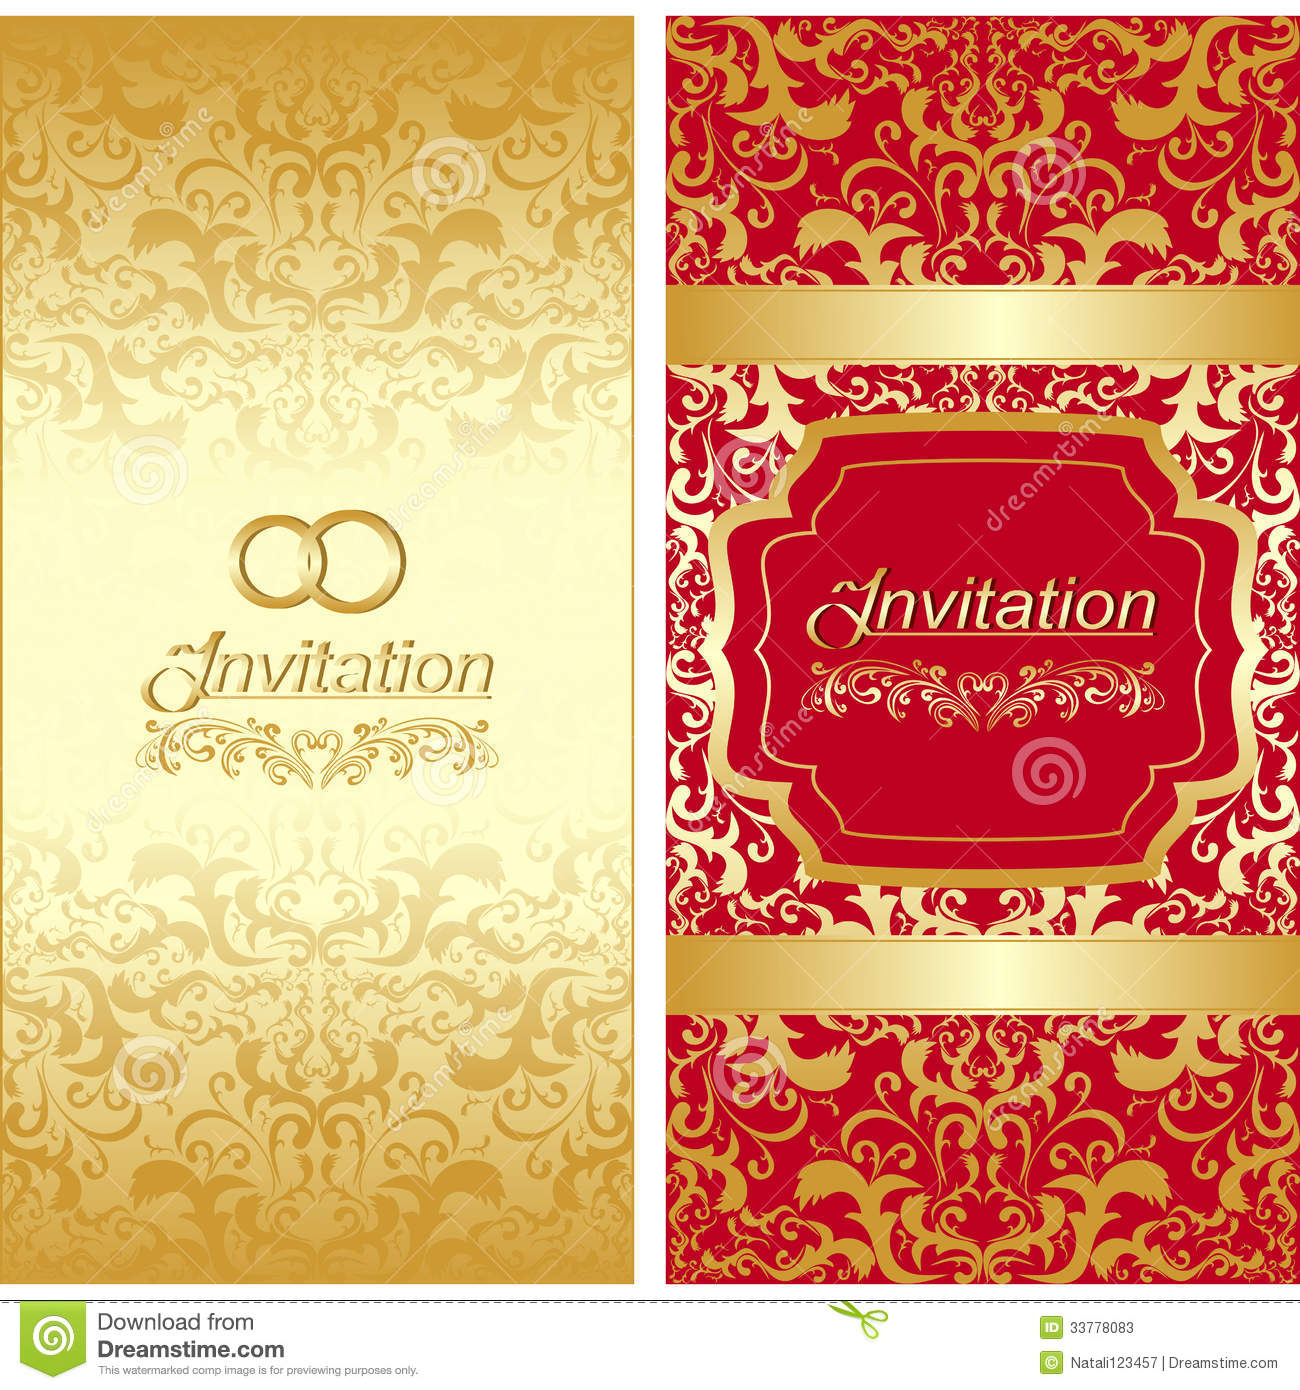 Invitation card design stock vector. Illustration of abstract - 33778083